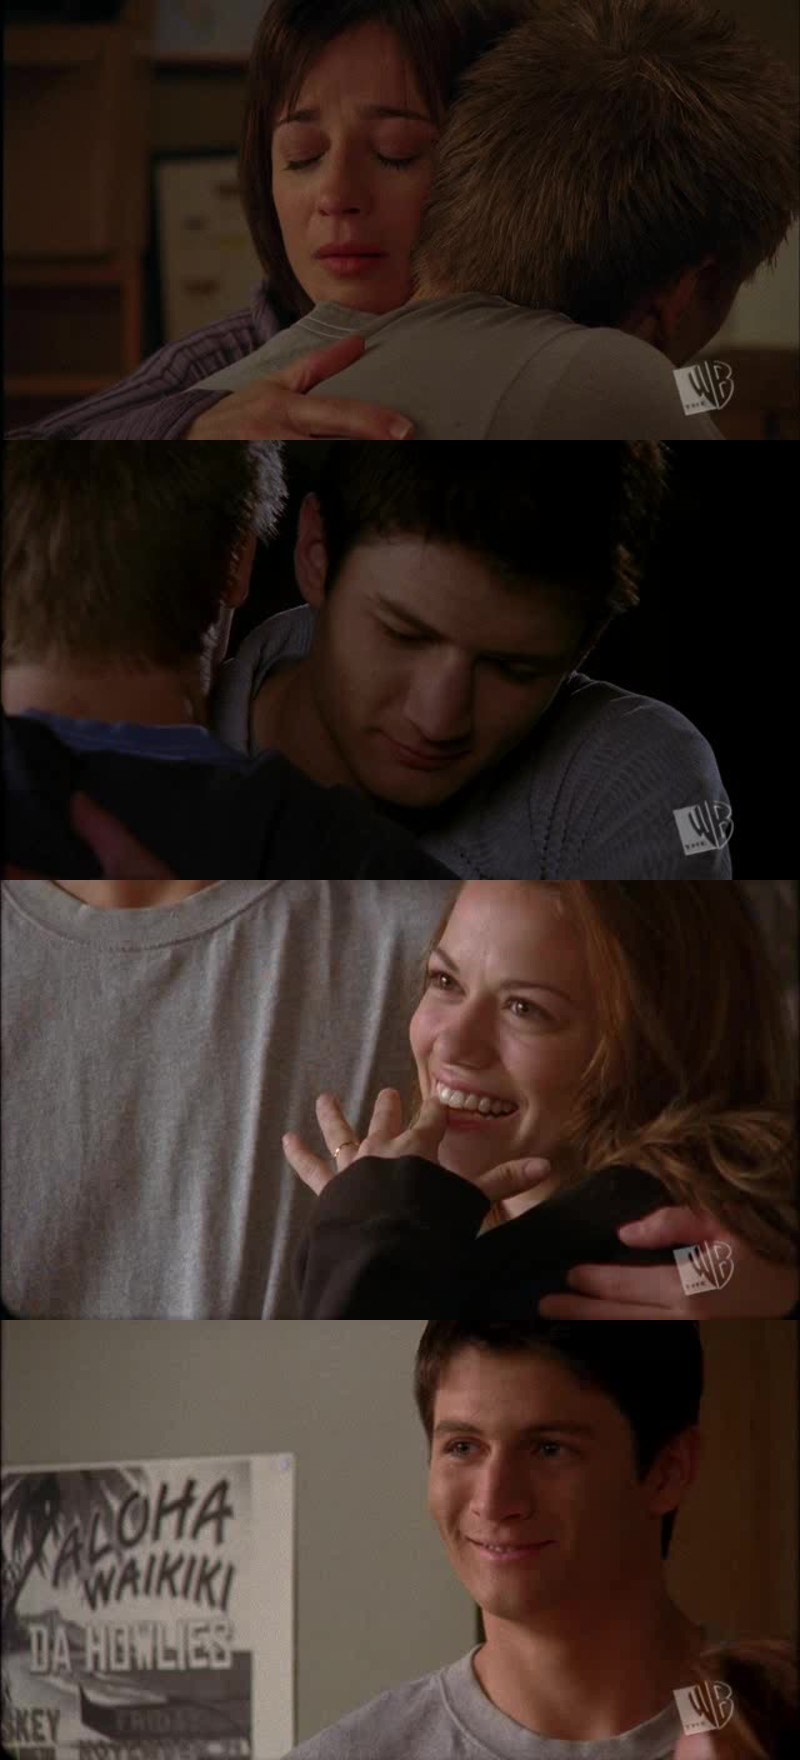 """I can't believe Naley got married, they are so cute together and it's great to see their development throughout the season. Also, Nathan and Lucas finally bonding is beautiful, I loved the scene they said they are gonna miss each other ❤️ """"There is only ONE TREE HILL"""""""